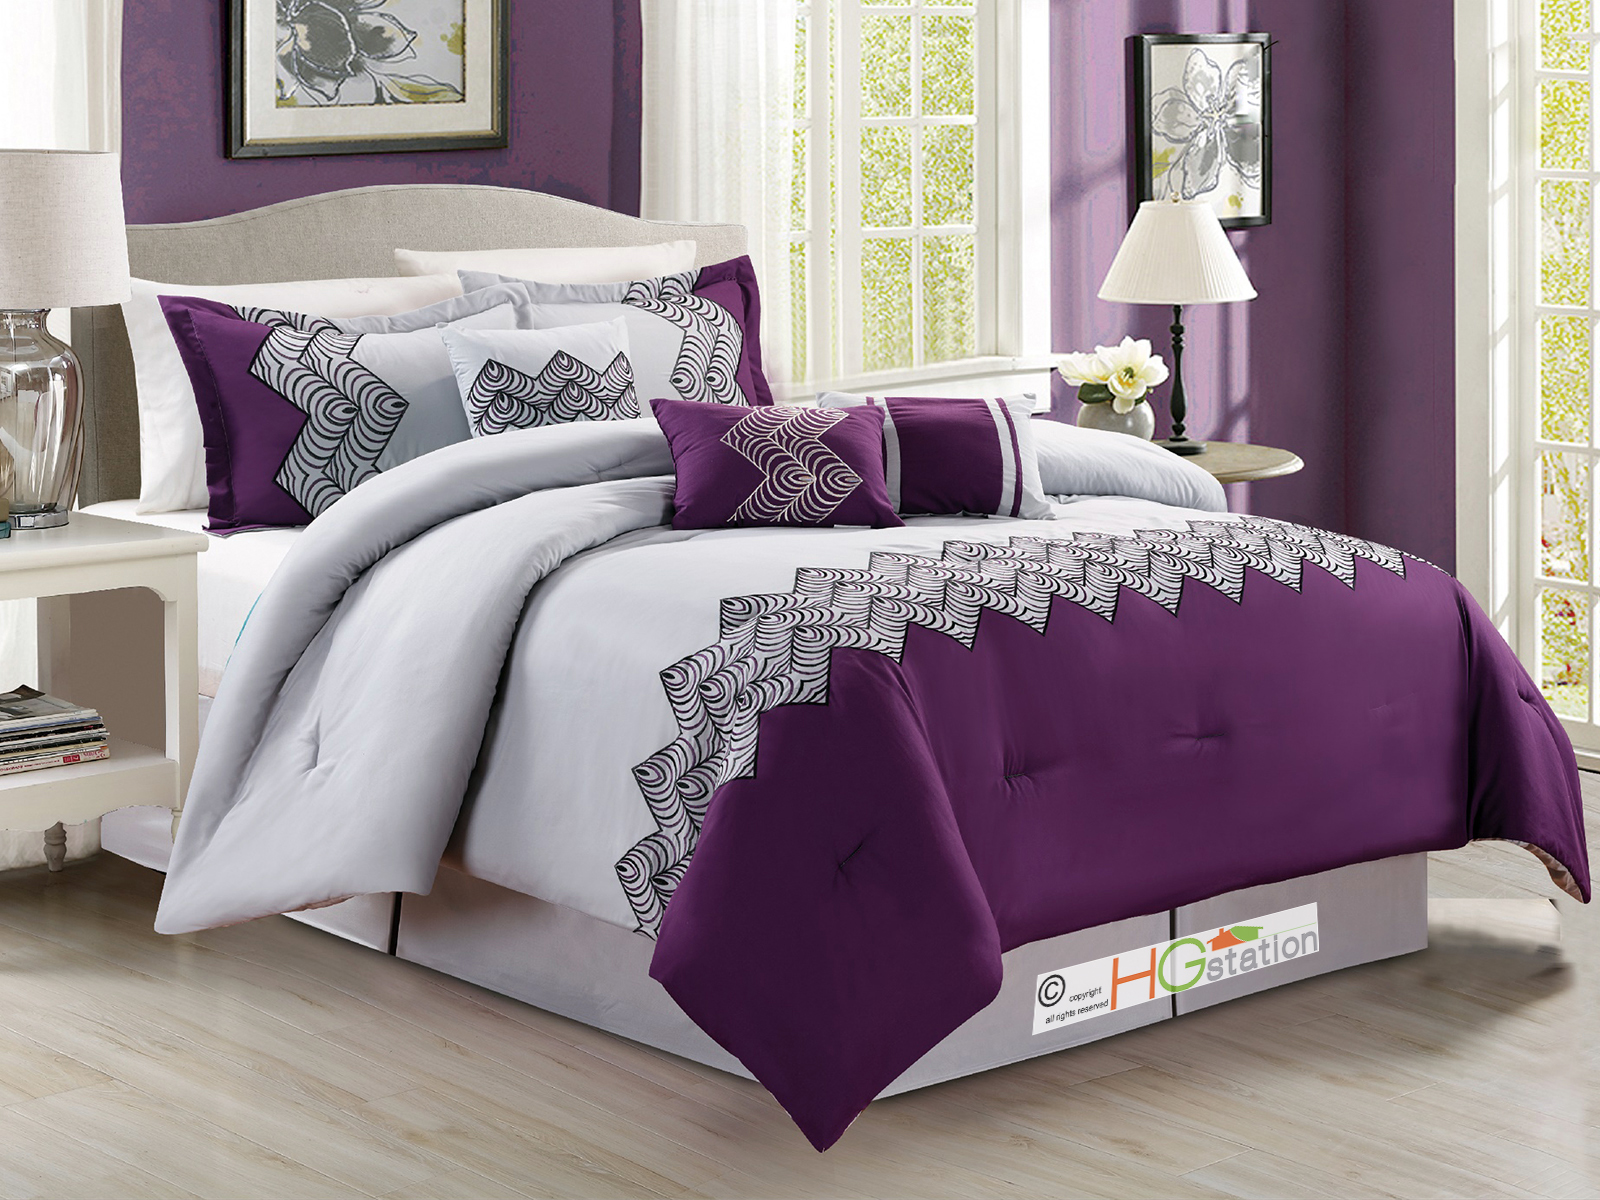 7P ZigZag Chevron Curved Embroidery Comforter Set Purple Light Gray Silver Queen 642709894414